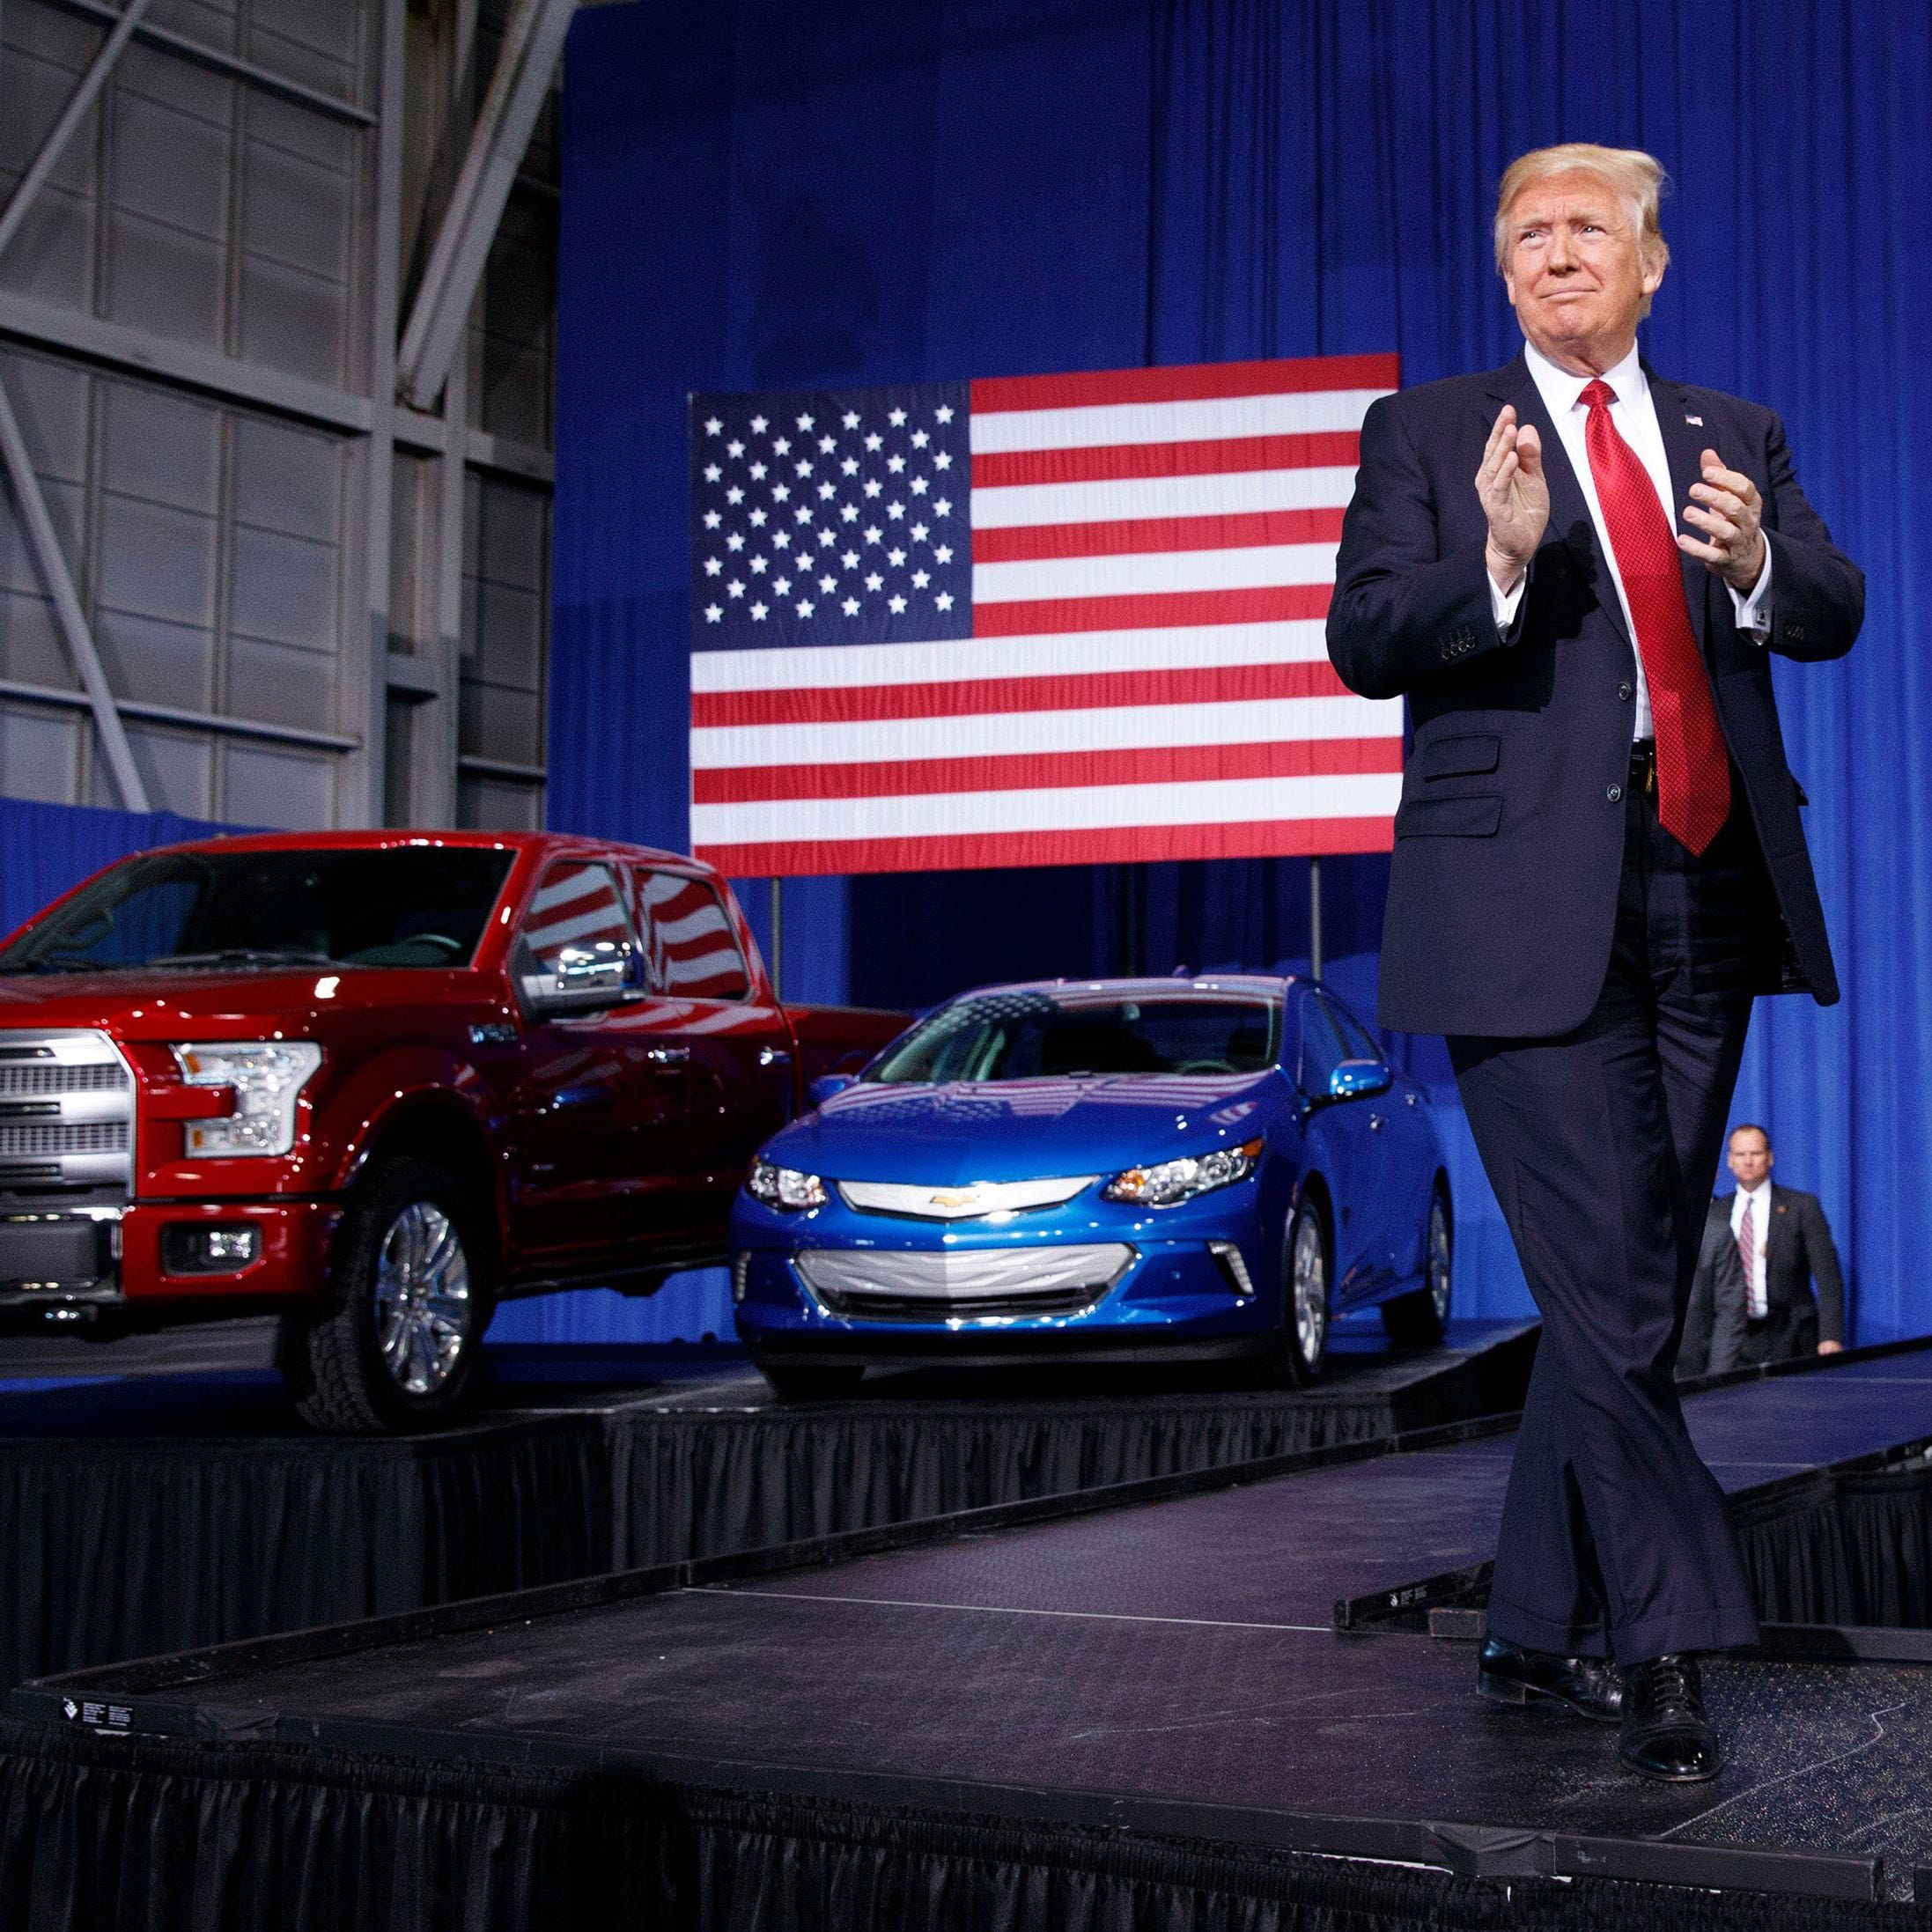 New China tariff list creates risk of 'downward cycle' for US auto industry